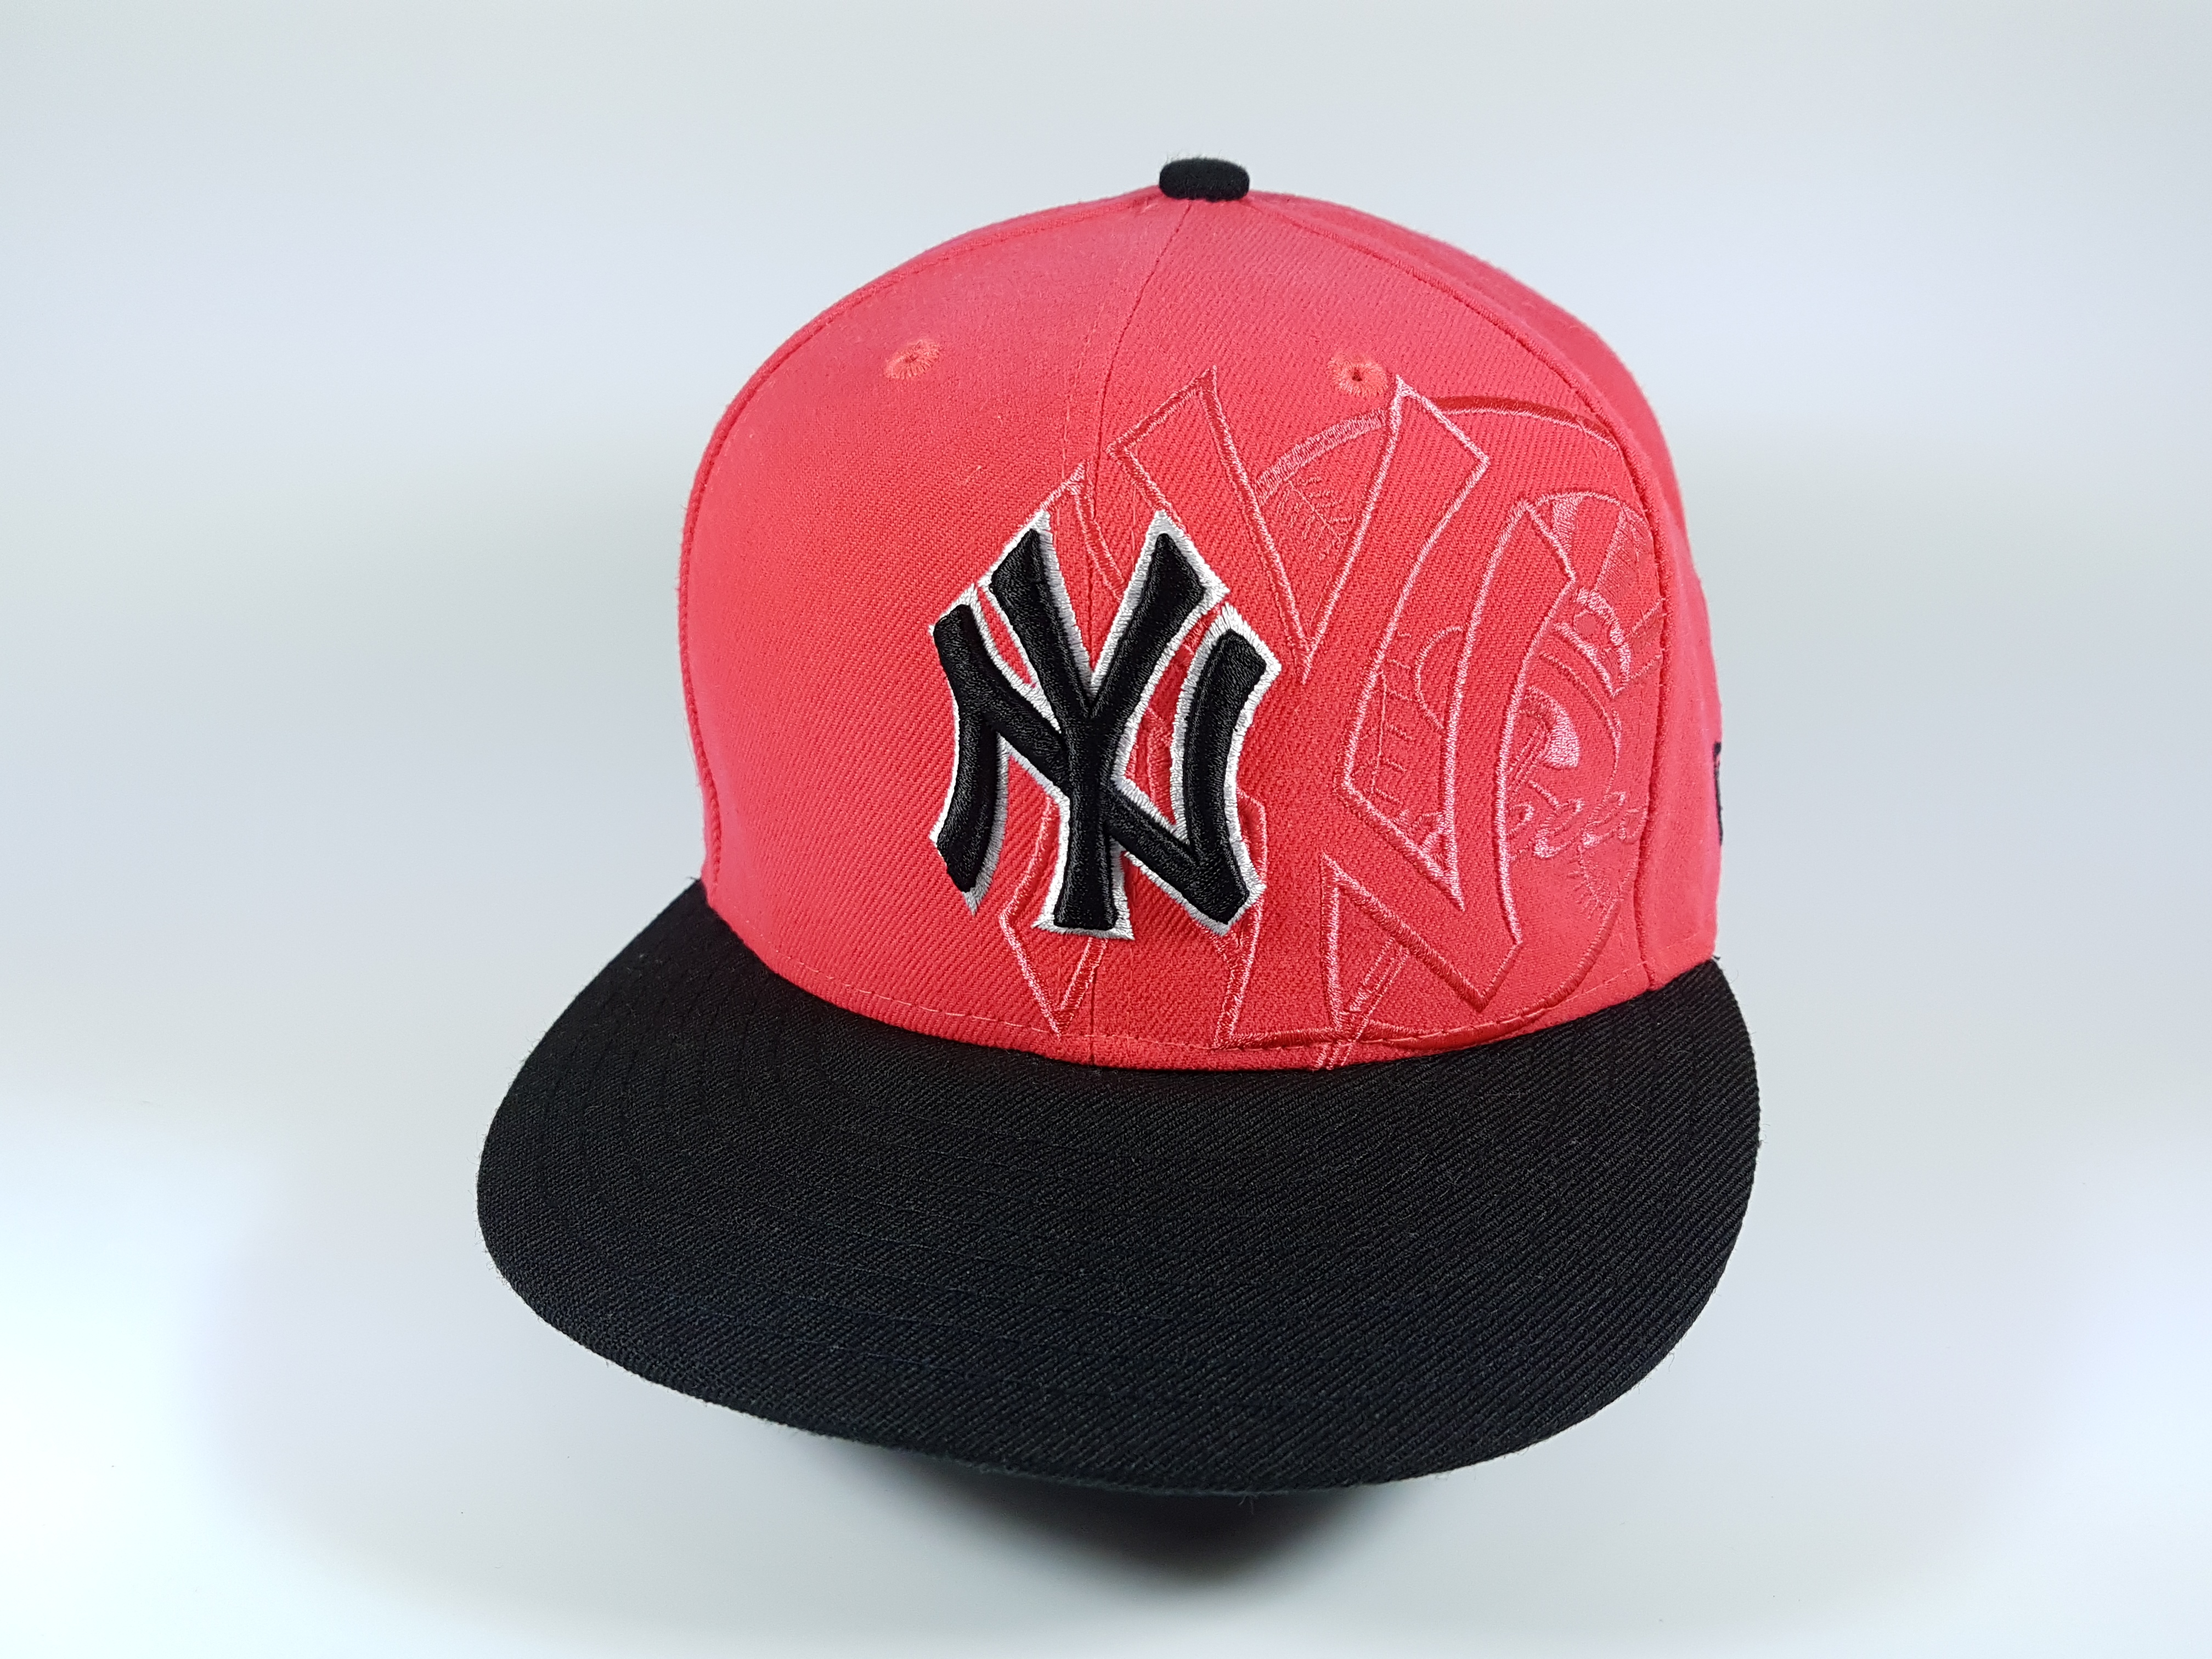 629e94da New Era MLB NY Yankees Fitted Size 7 1/8 56.8cm